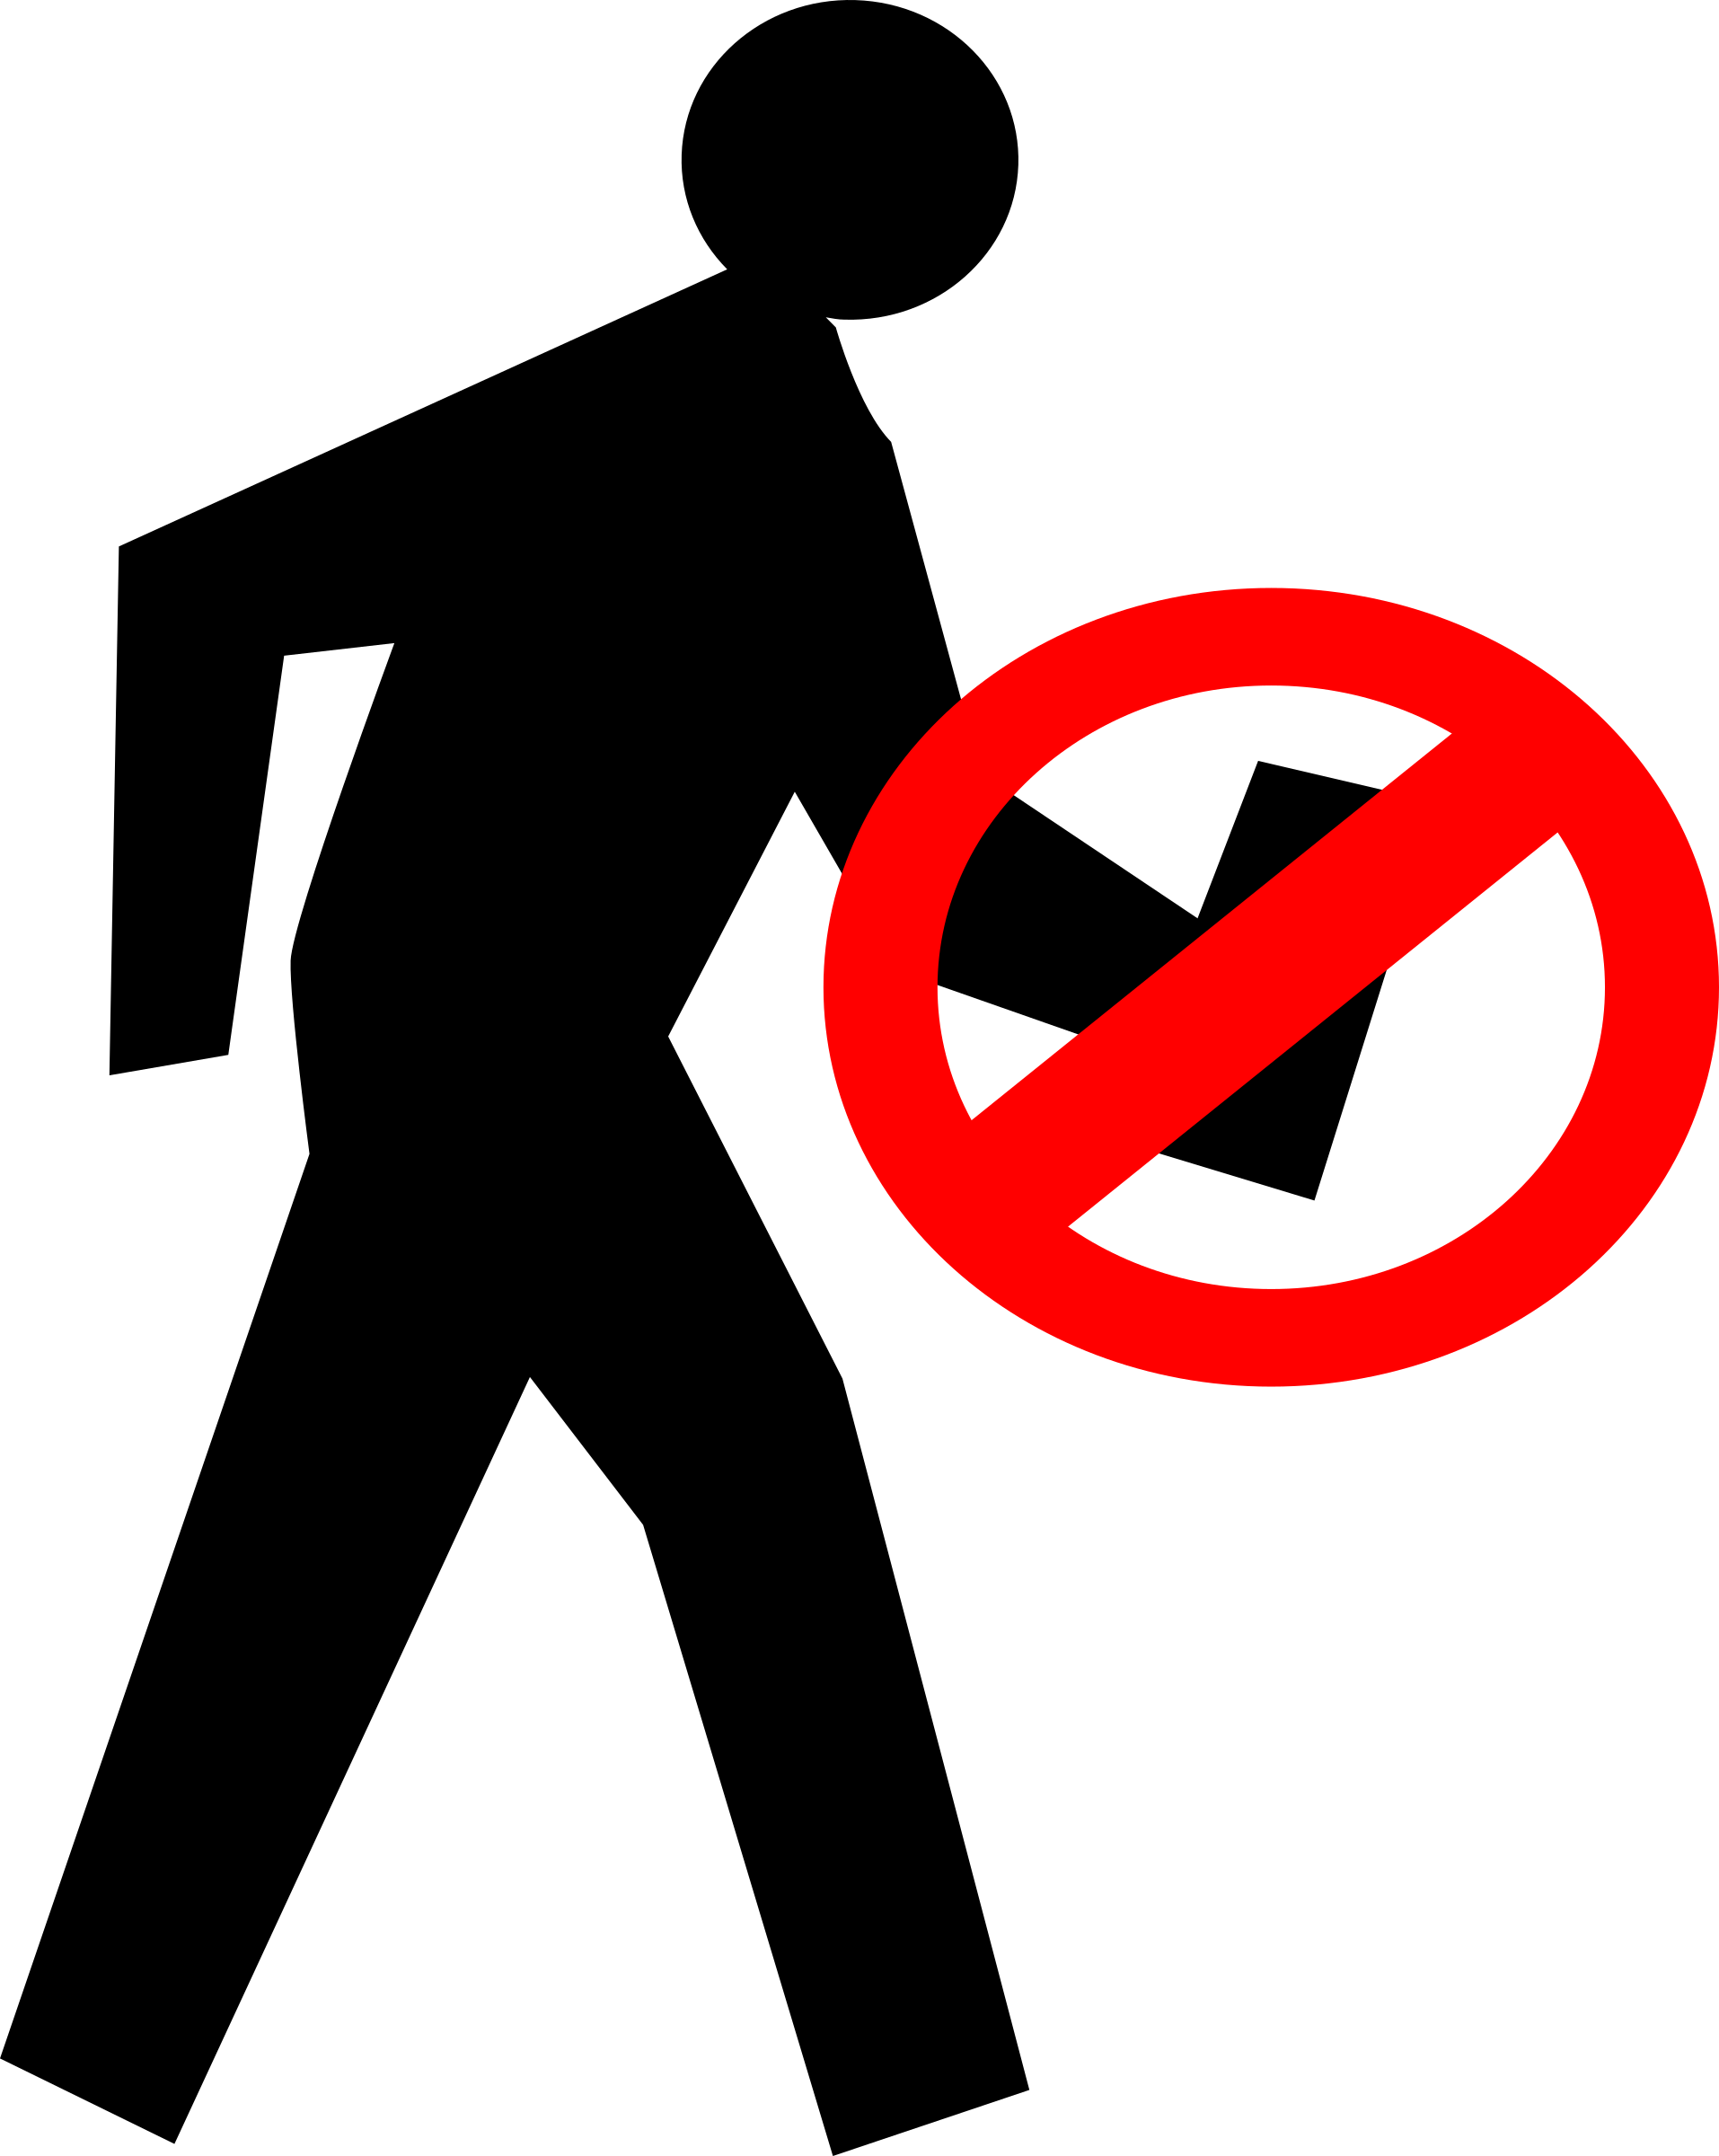 No smartphone icons png. Clipart walking tune